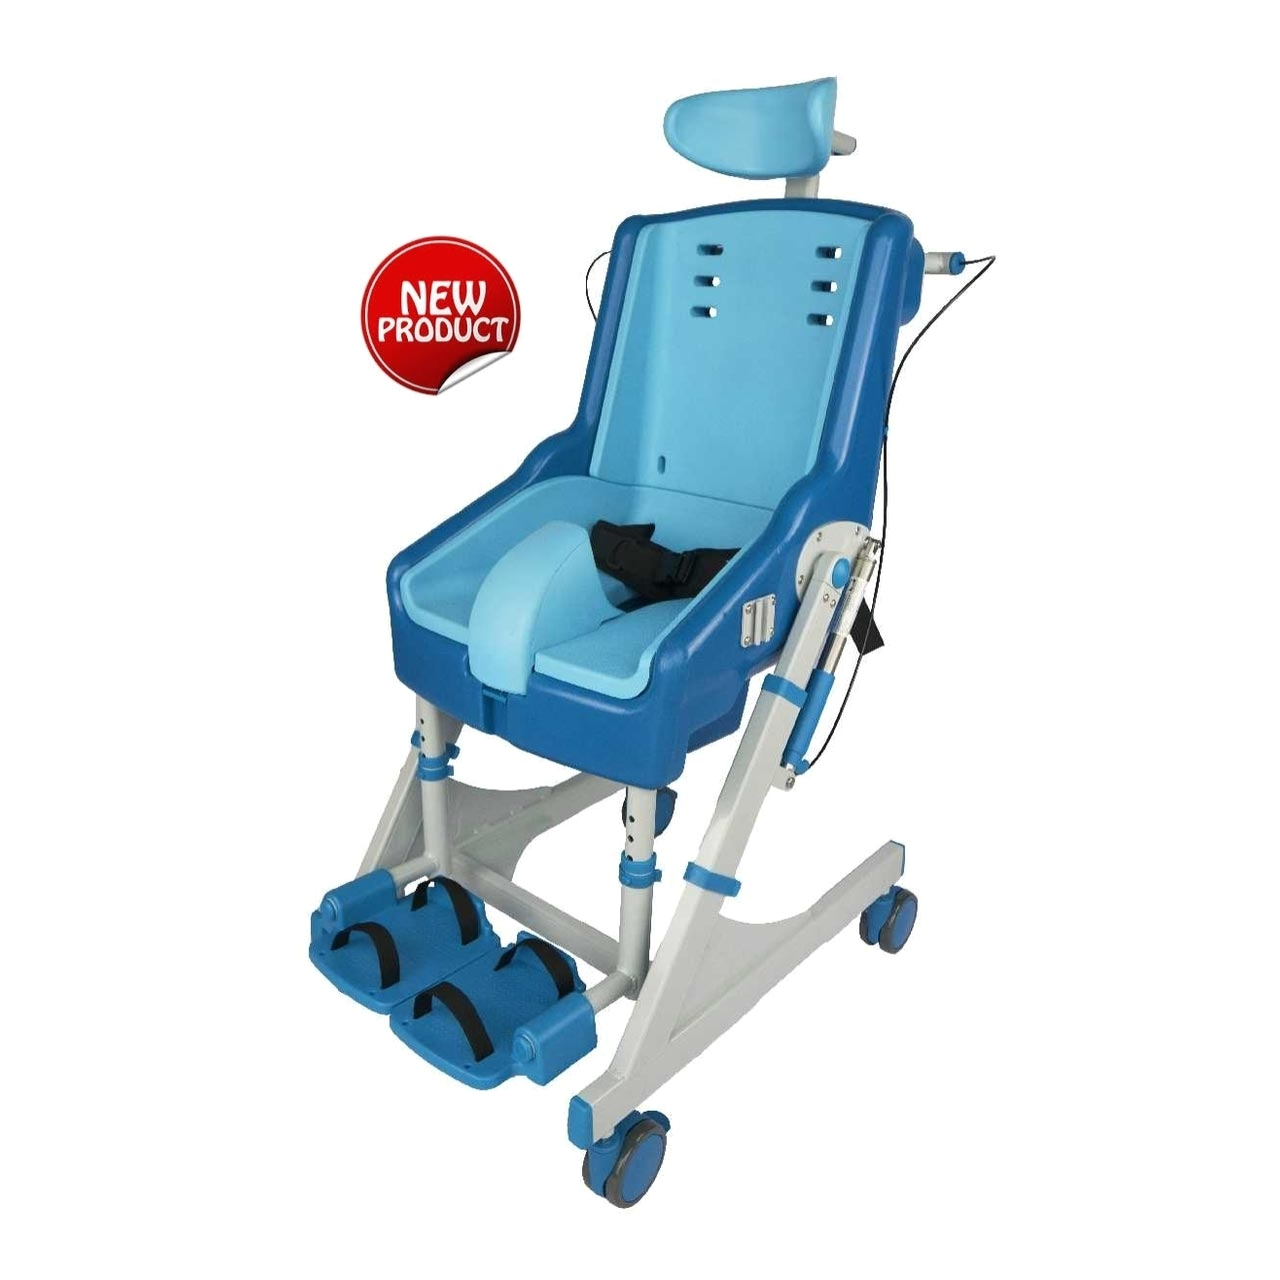 special needs chairs antique parlor bath for toddlers seahorse plus hygiene chair pme group